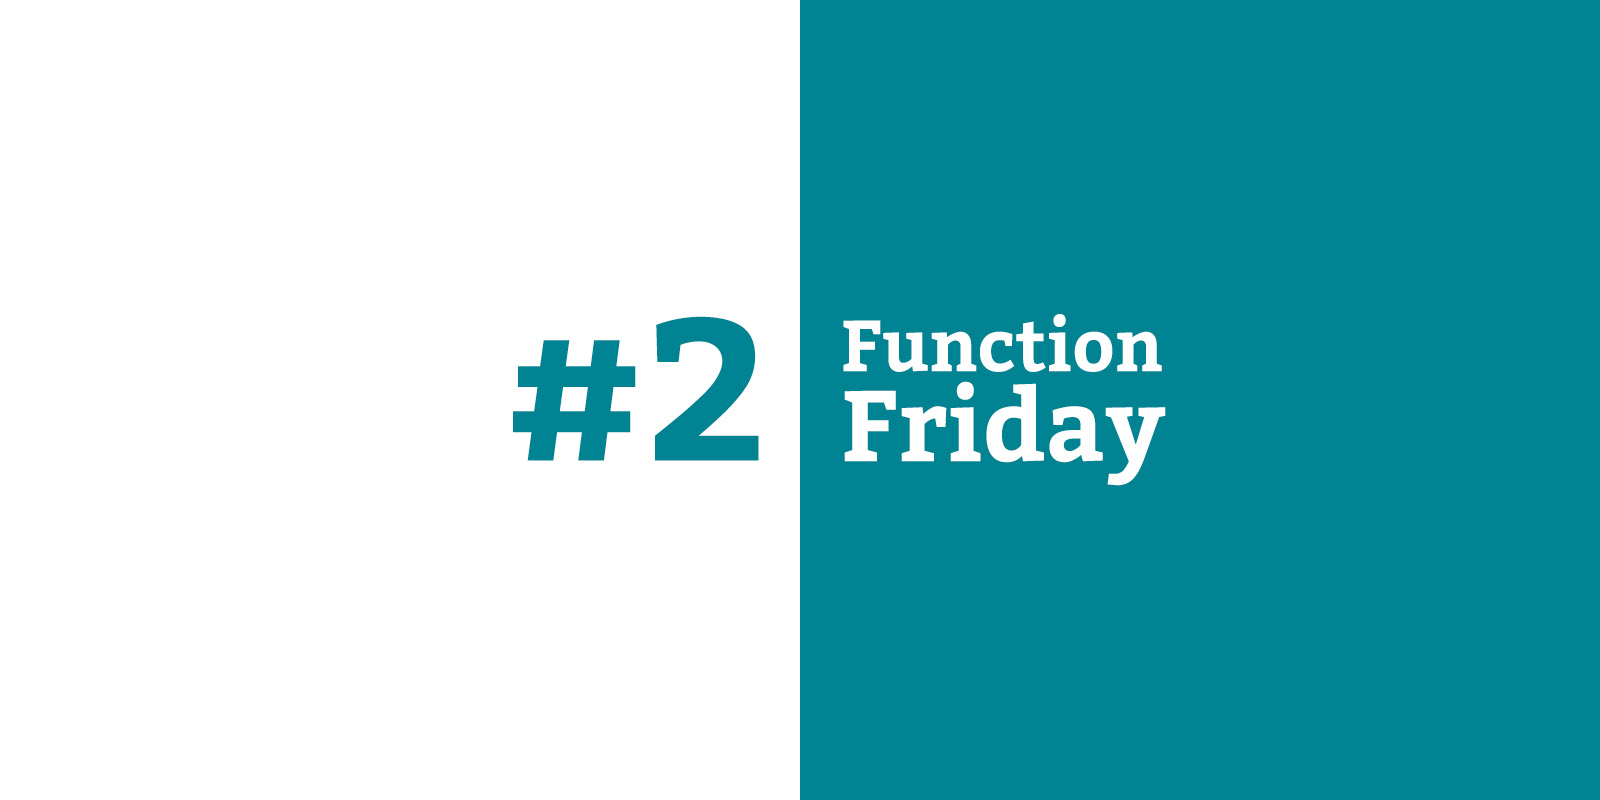 Function Friday #2